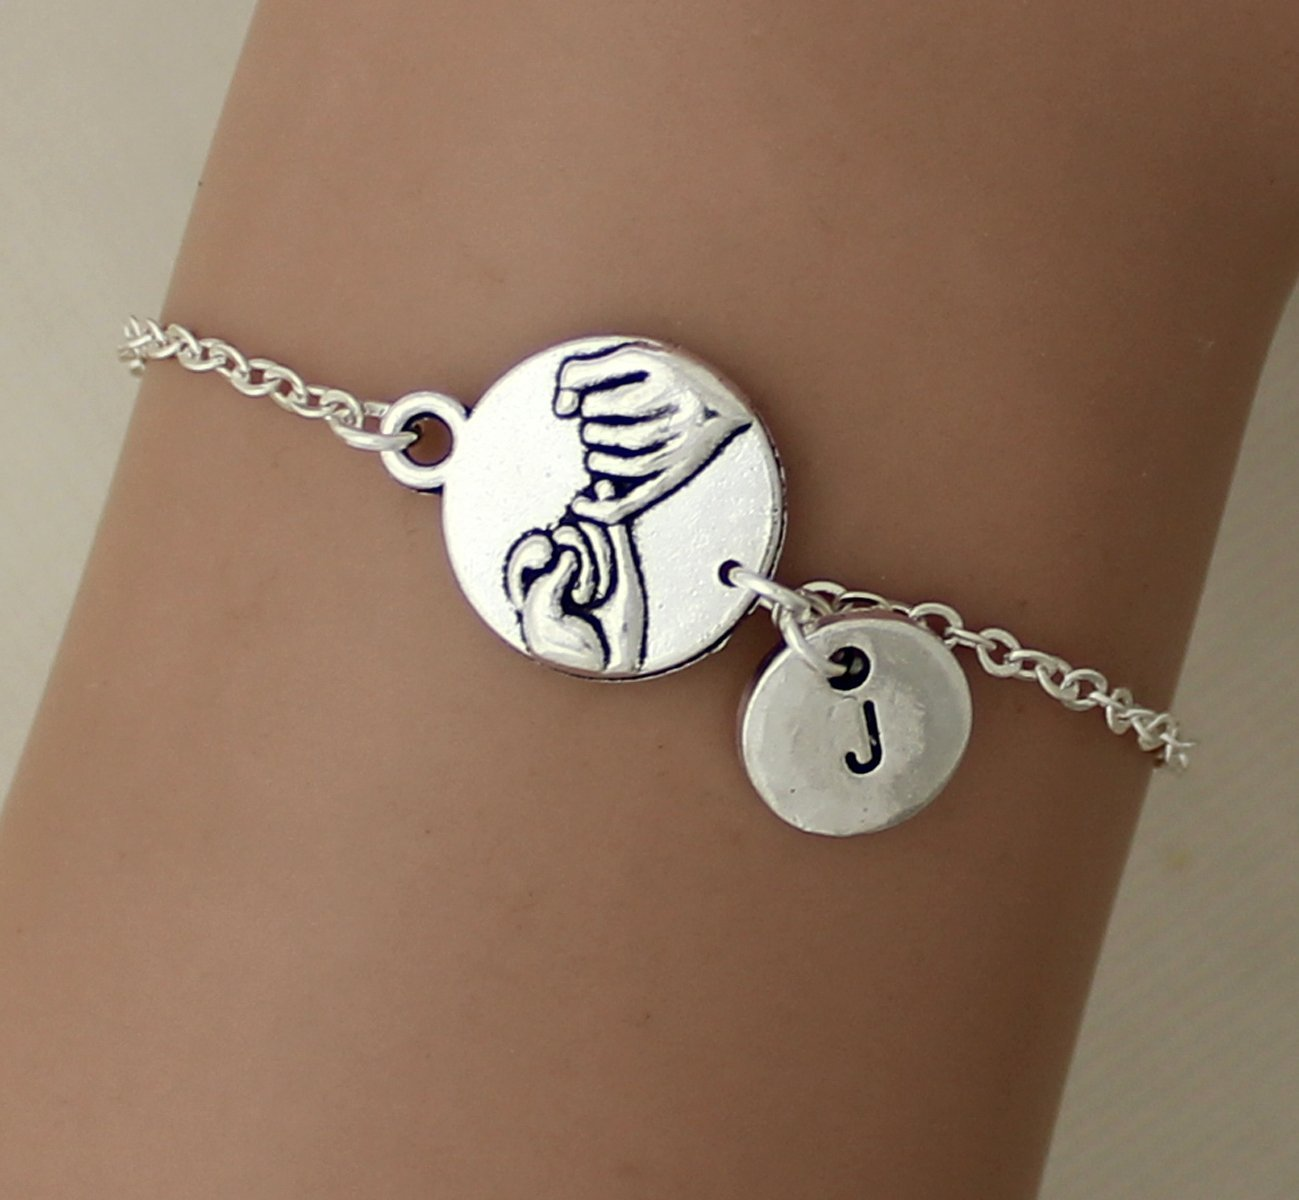 Lovers Heart Bracelet Friends Letter Initial Bangle Caduceus Promise Pinky Personalized Gift Jewelry Silver You/'re my person